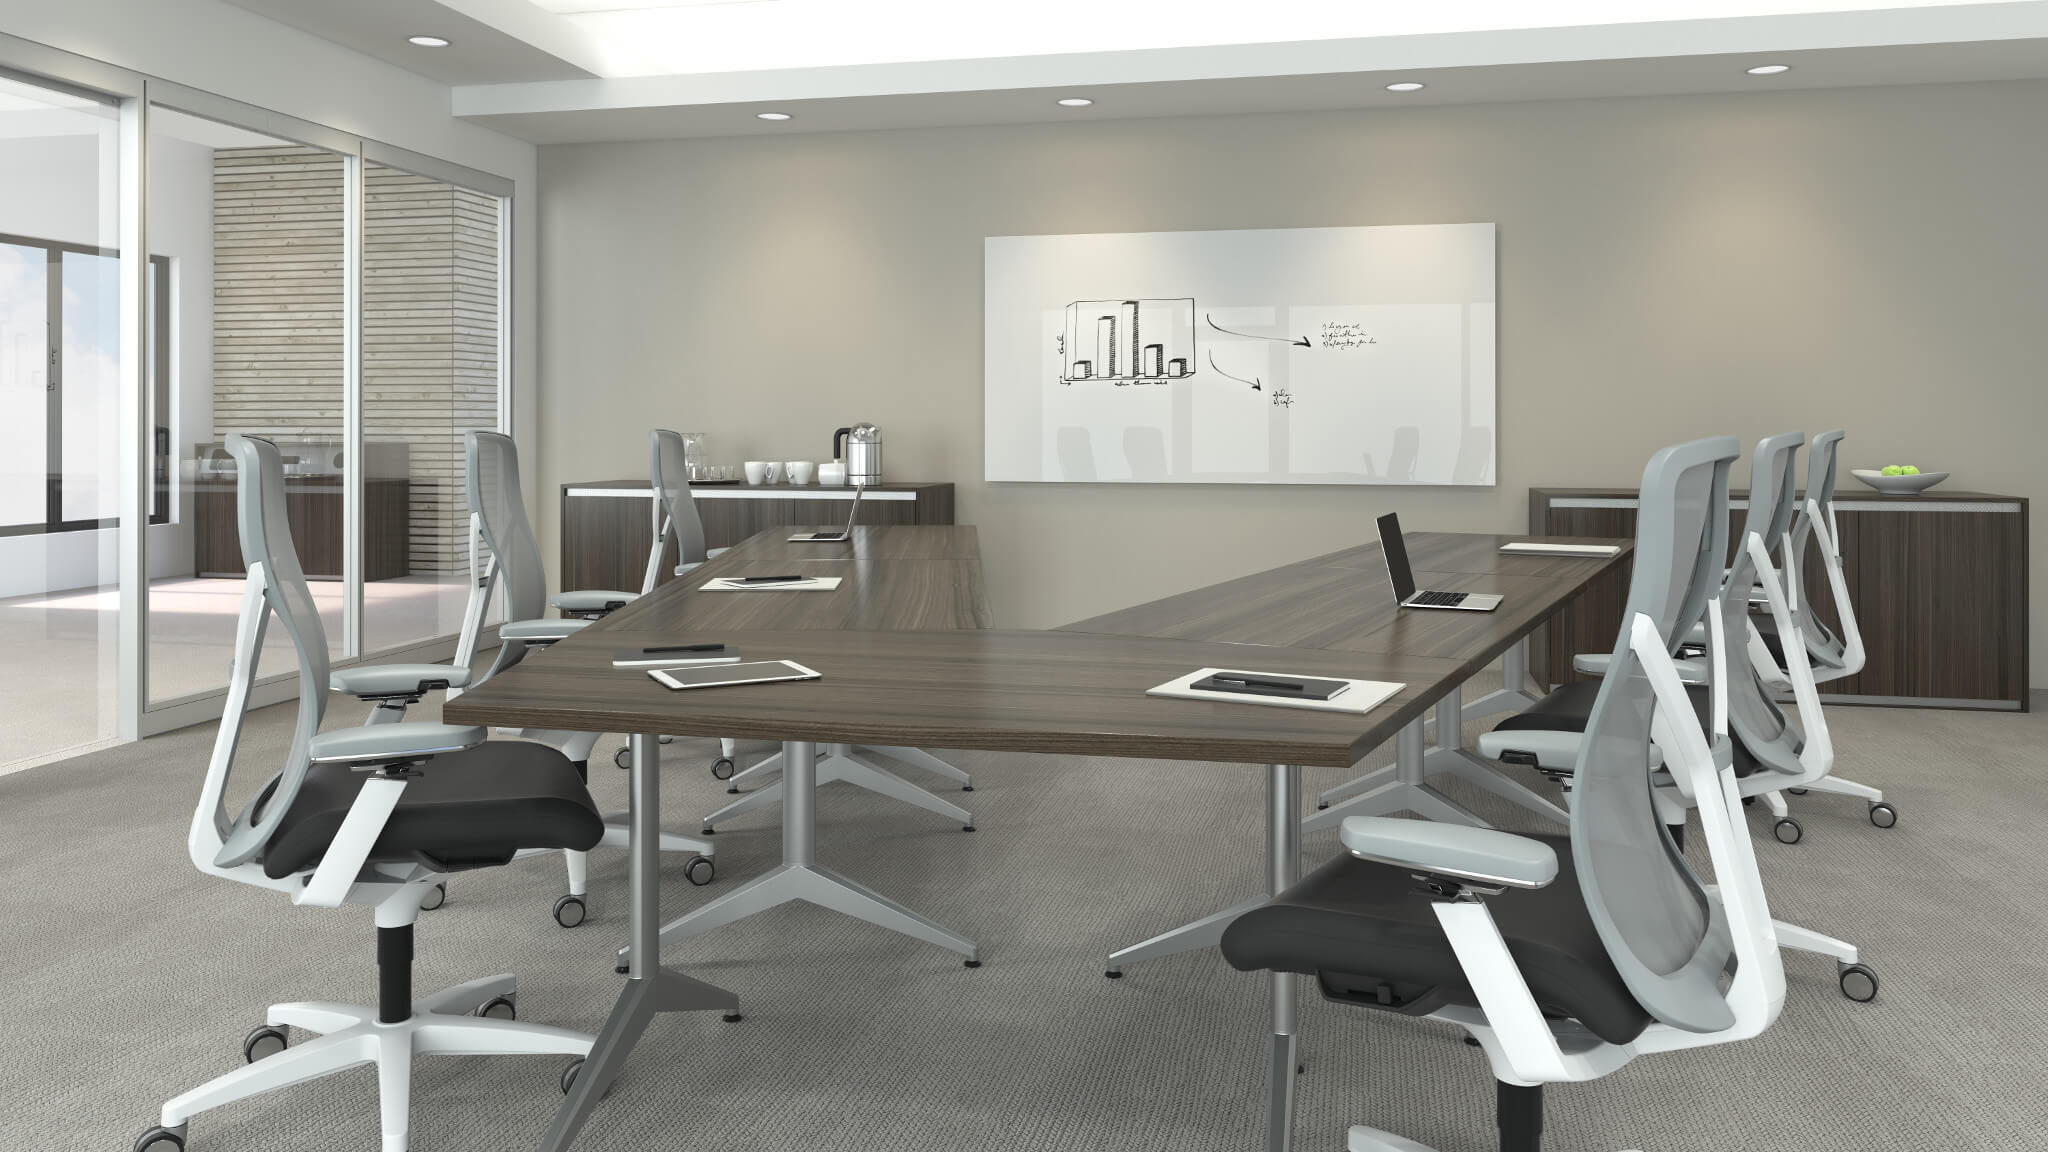 Meeting Spaces All Makes Office Equipment Co